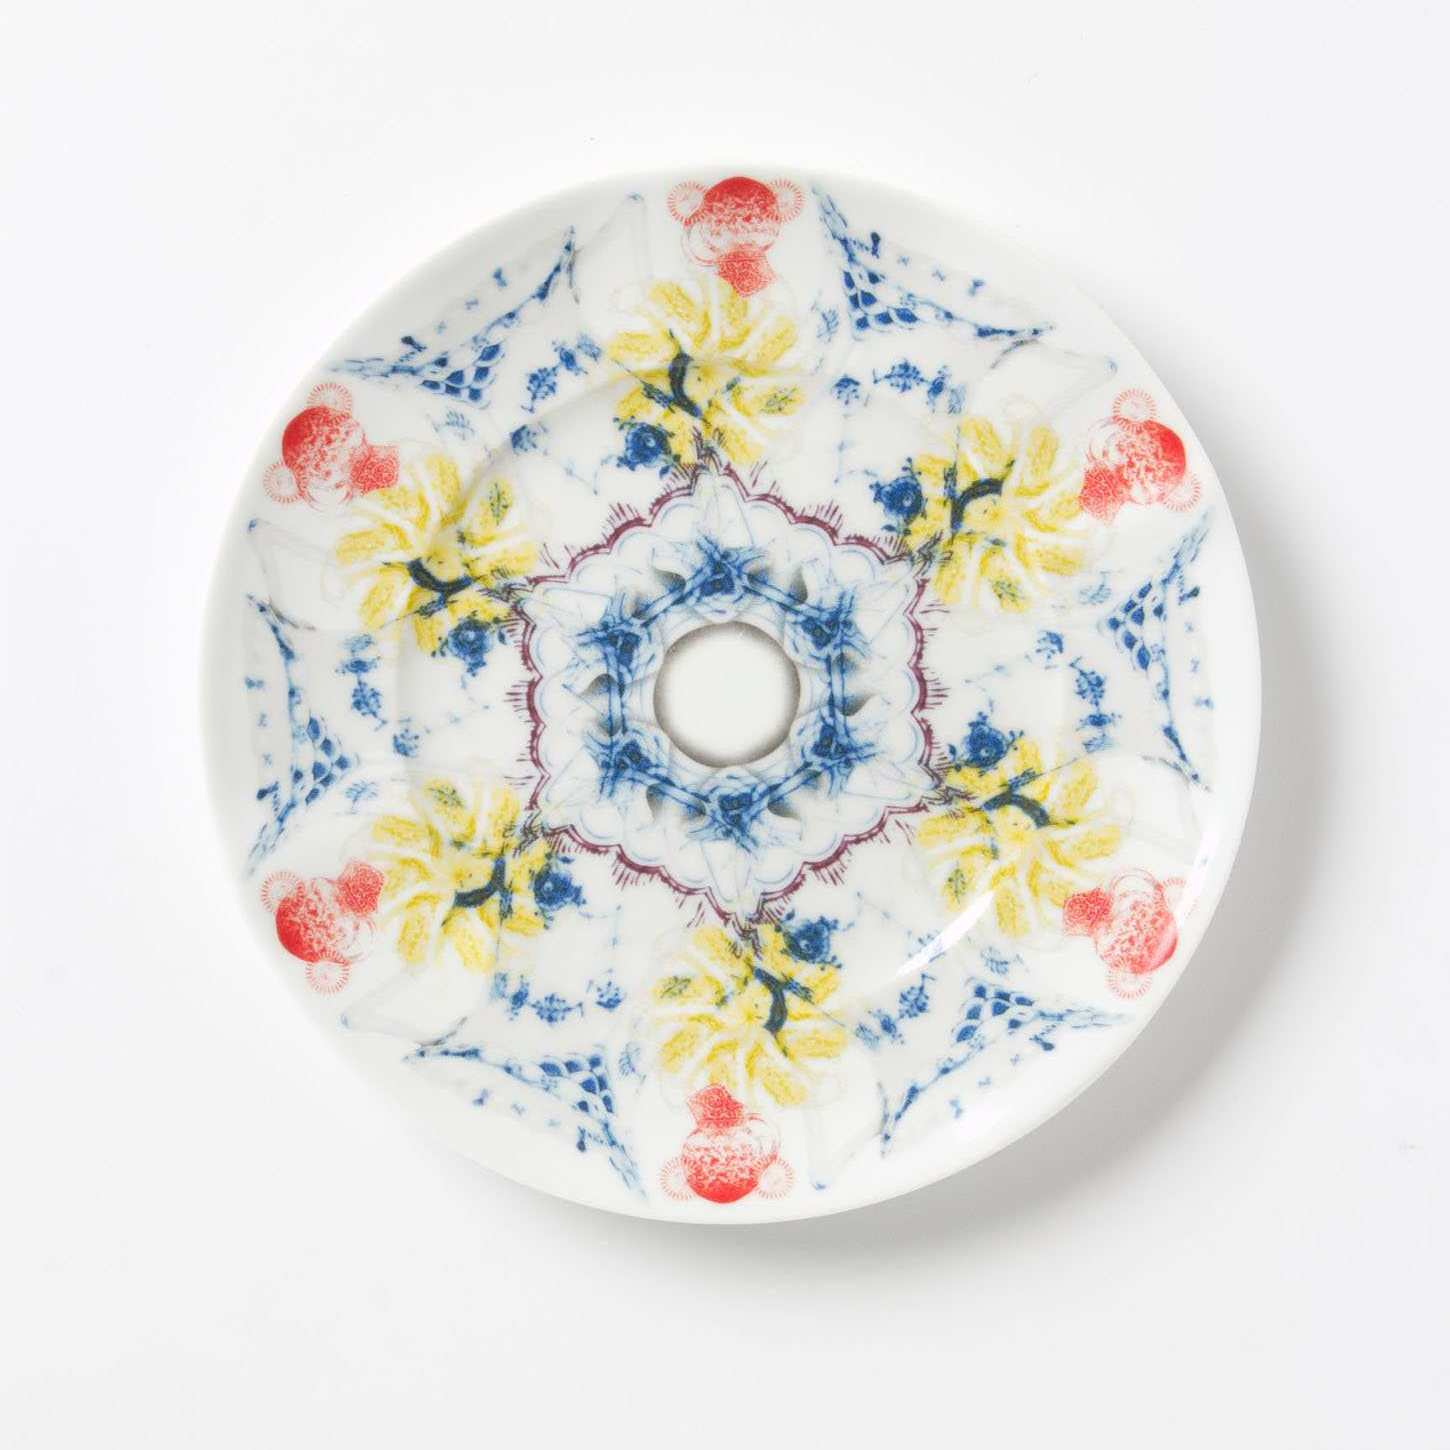 Wall Flowers: Decorative Plates in the Dining Room - Swoon Worthy